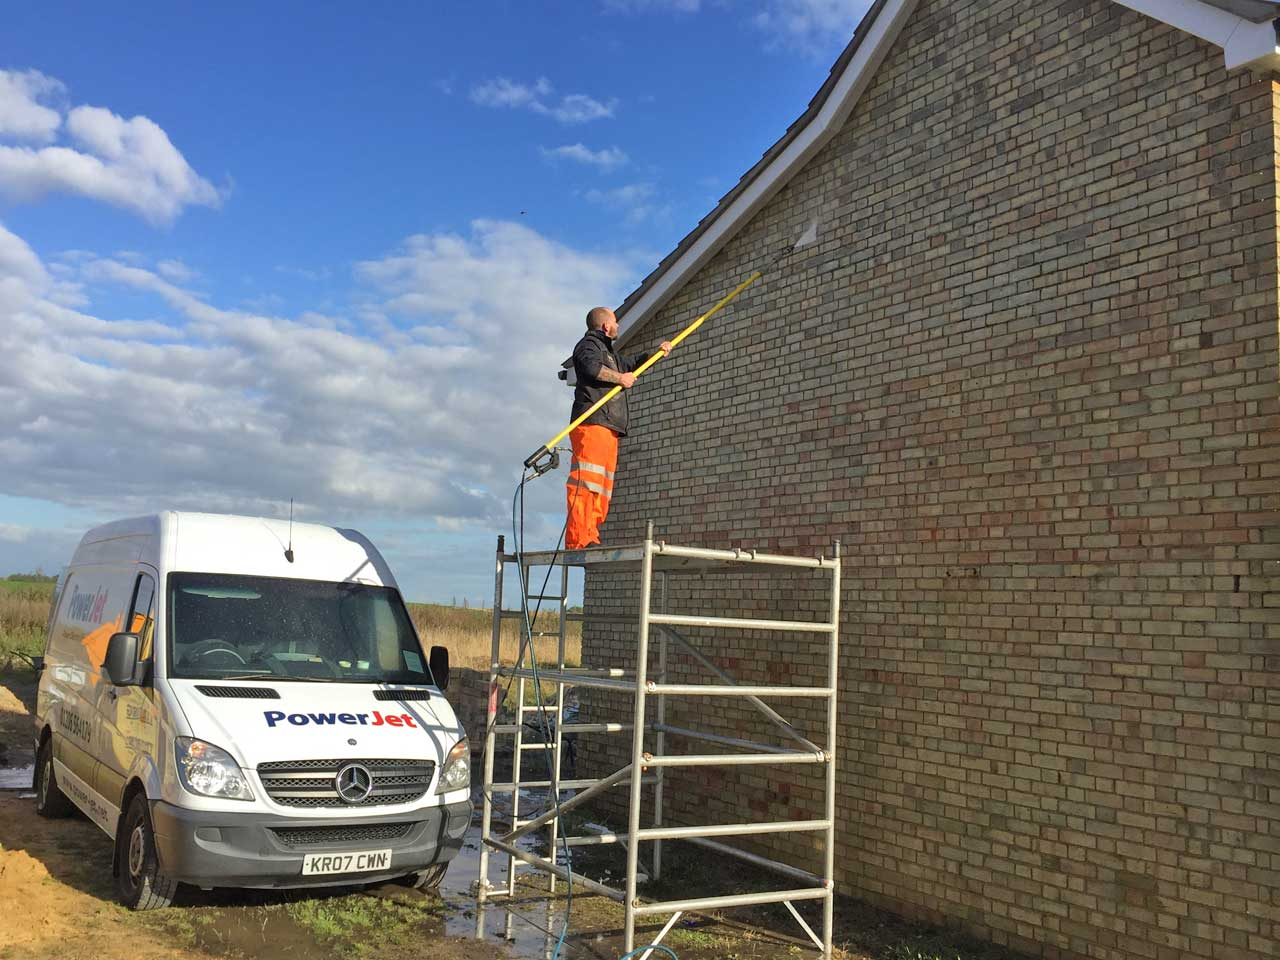 High Level Cleaning Pressure Washing Company in Colchester Essex Power Jet